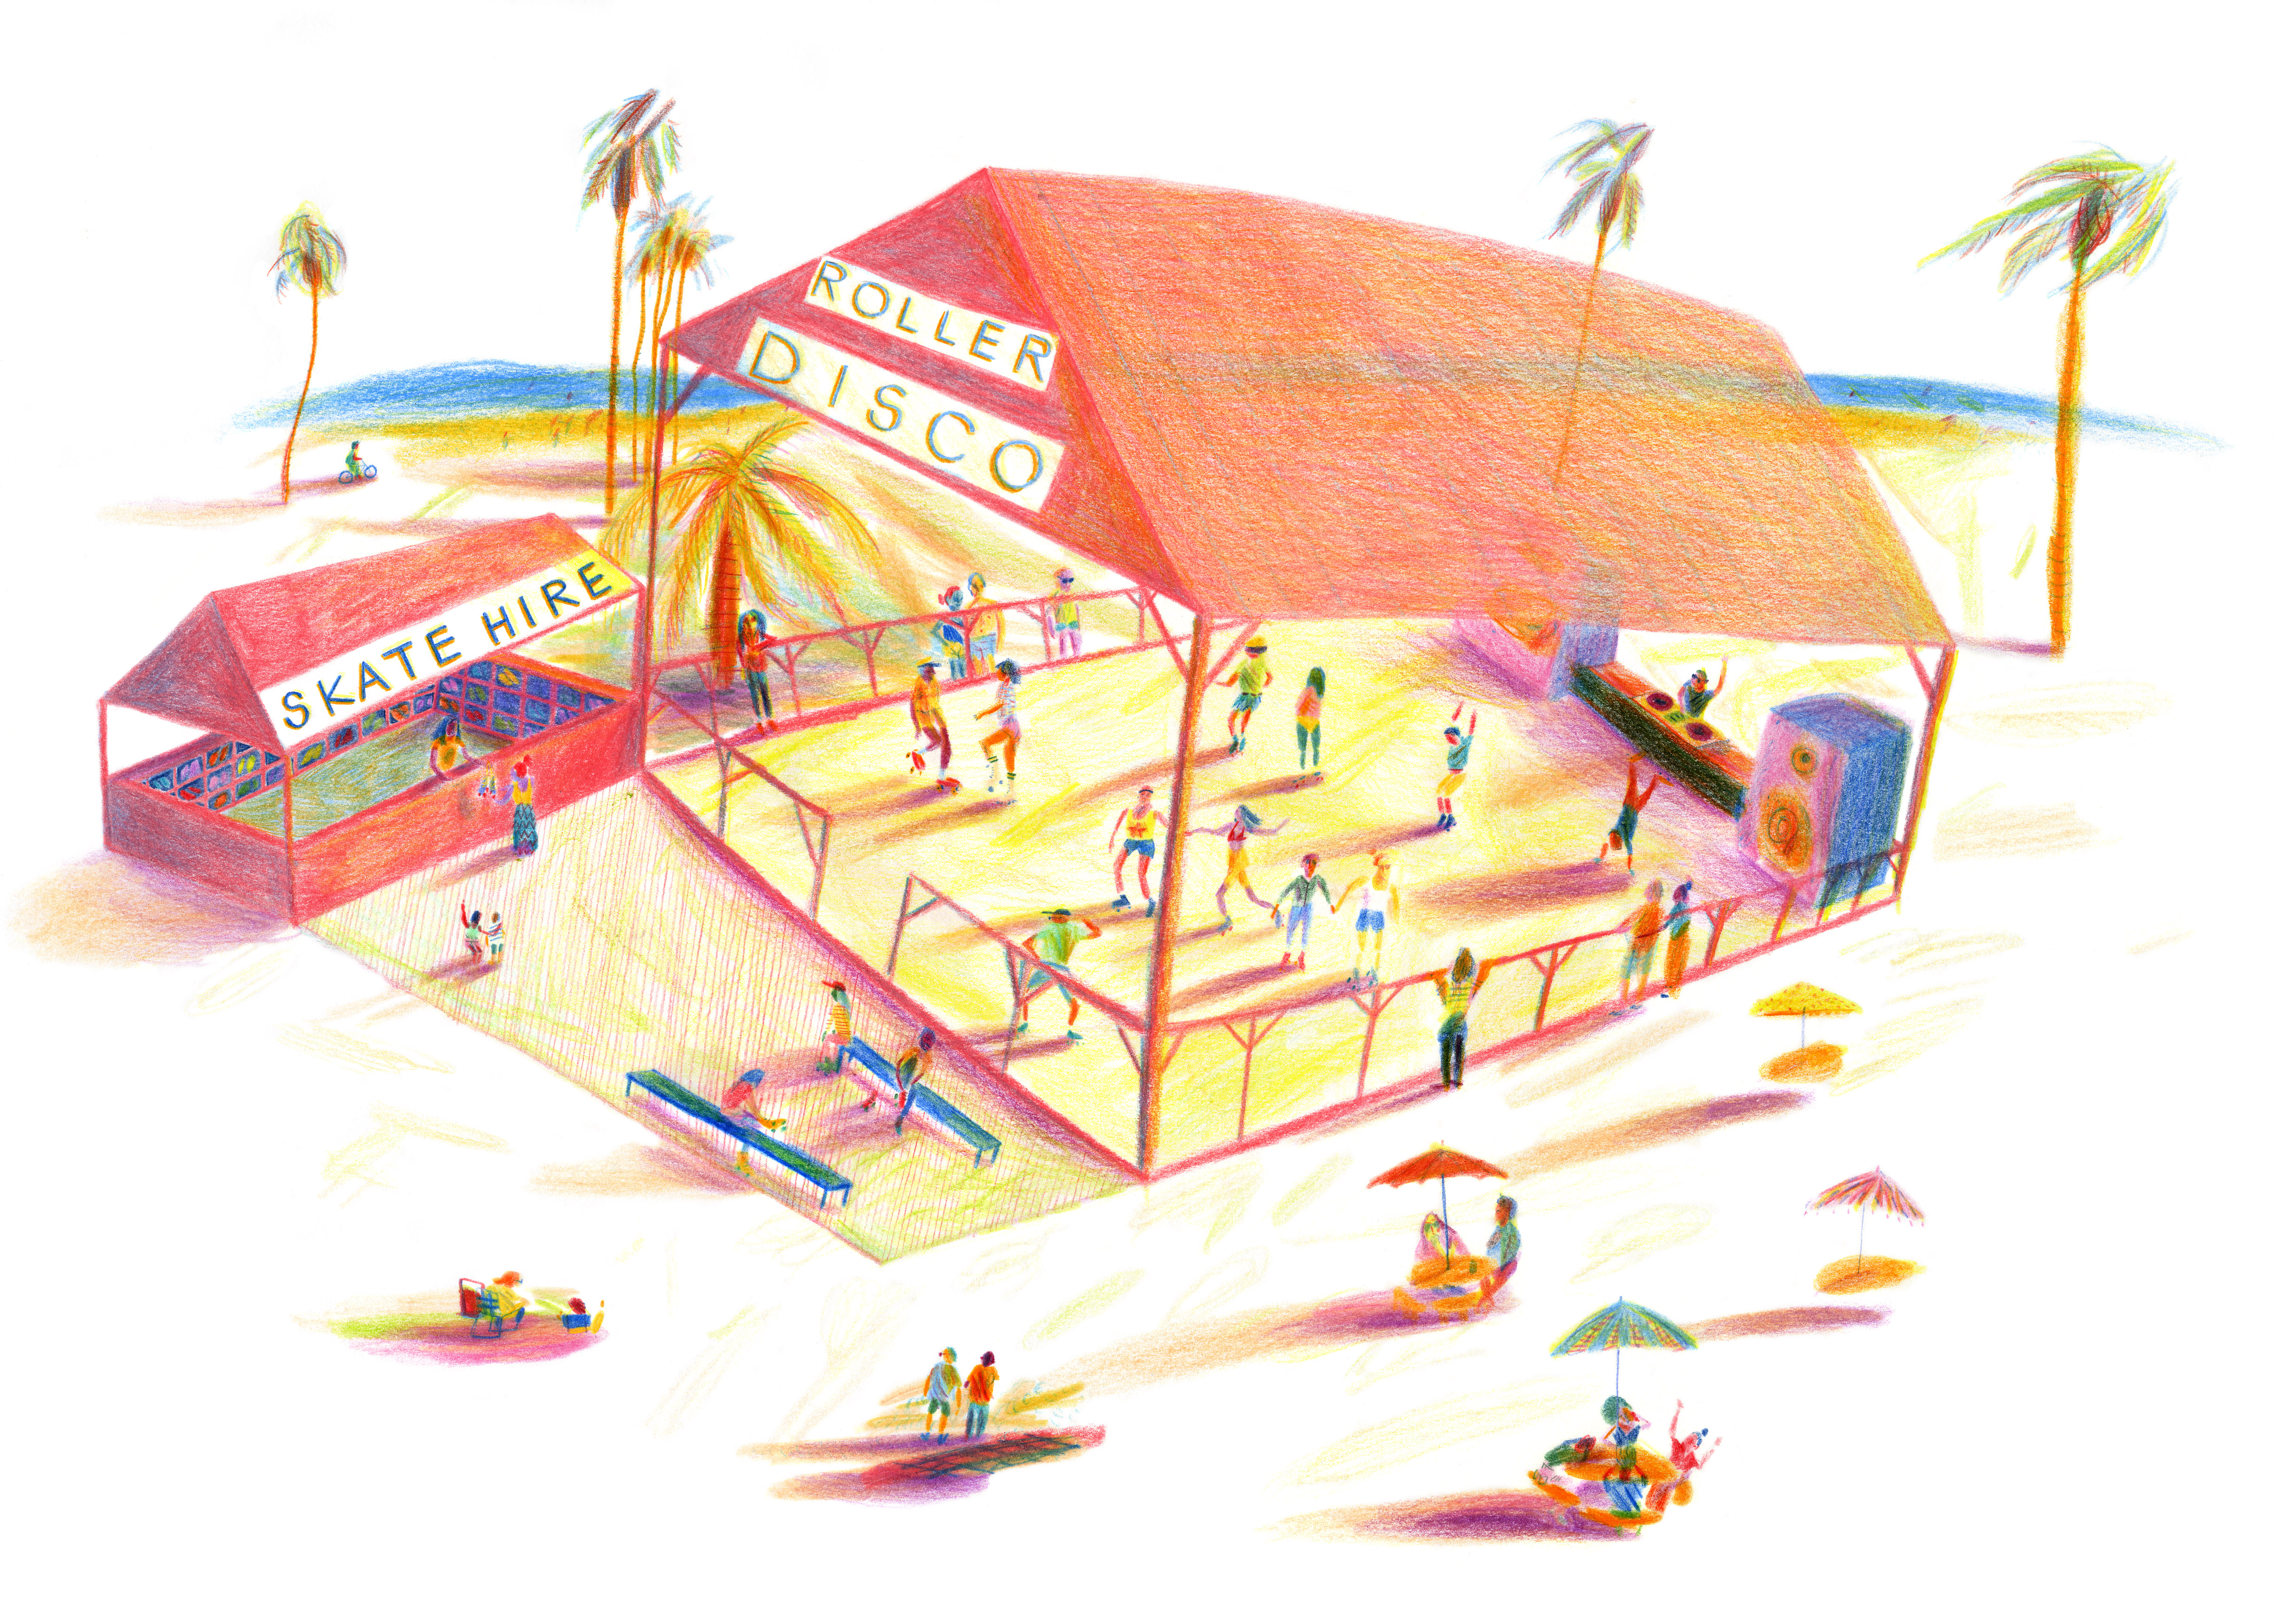 Concept drawing for Skate Malawi